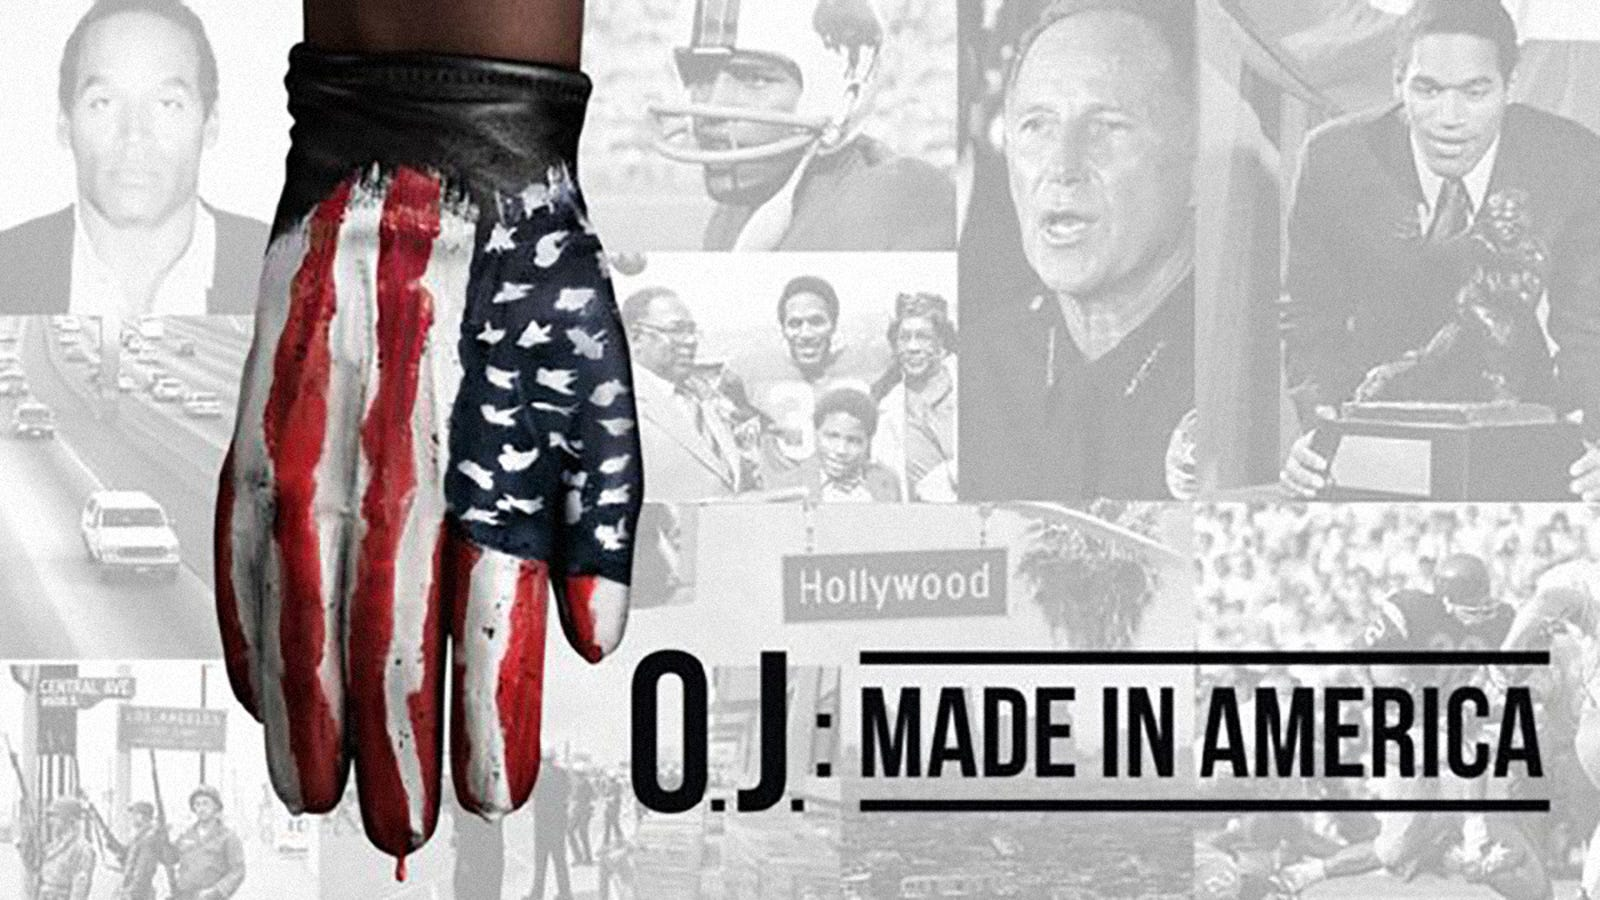 O.J.: Made In America: This comprehensive ESPN Films documentary examined all the sociopolitical and cultural elements surrounding O.J. Simpson's infamous 1994 murder trial, transporting viewers back to an era of America that contained racism, sexism, police misconduct, and a dysfunctional legal system.